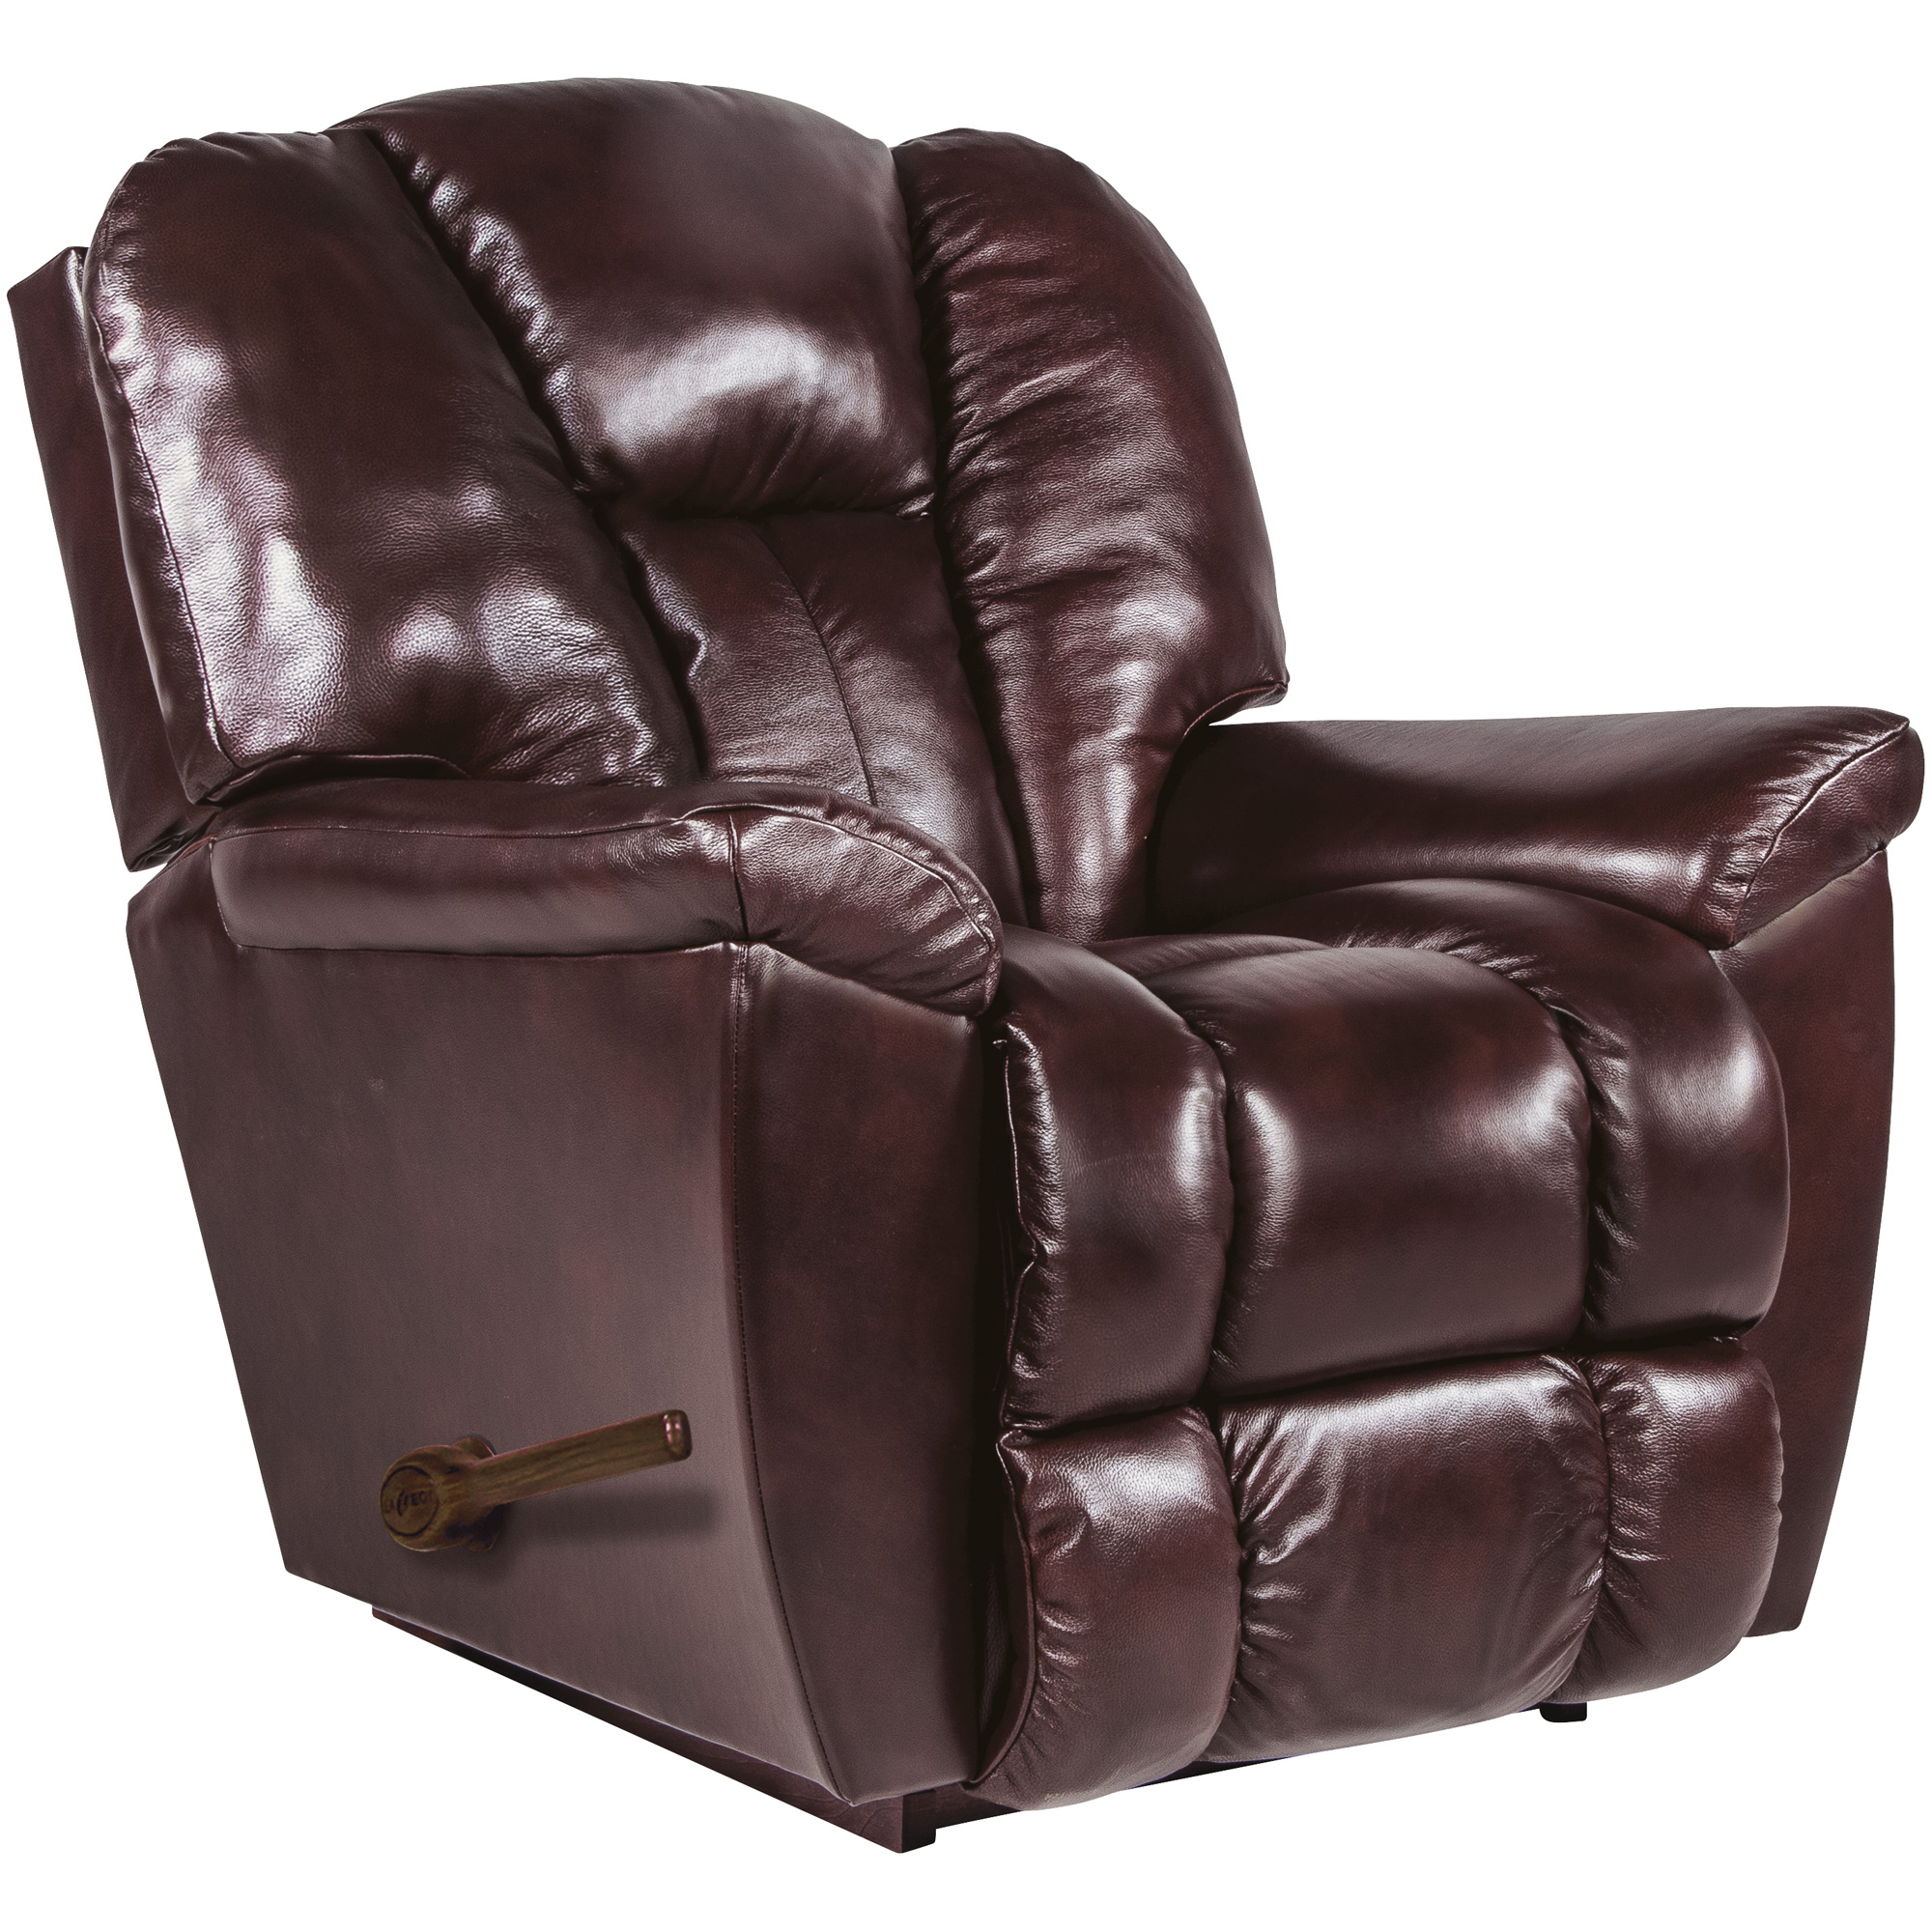 Maverick Burgundy Rocker Recliner Recliner Power Reclining